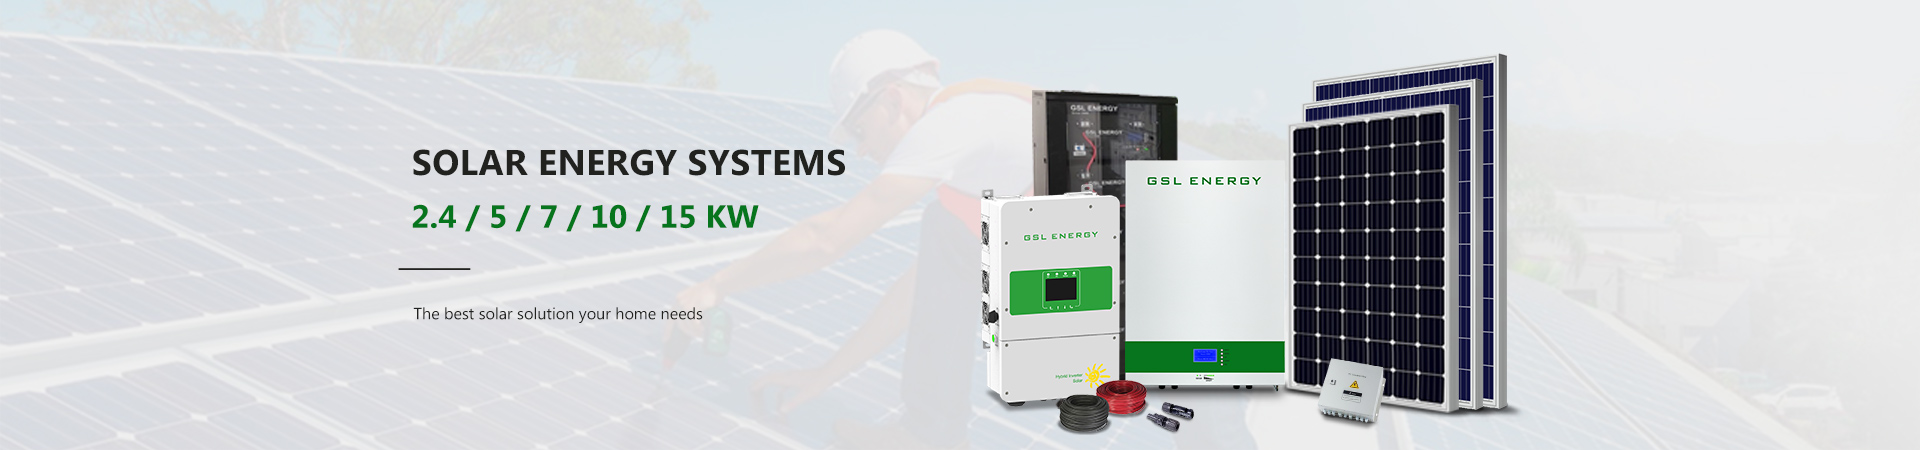 news-GSL ENERGY-GSL energy successfully offered ESS2080 20KWH 8KVA solar energy storage system solut-2